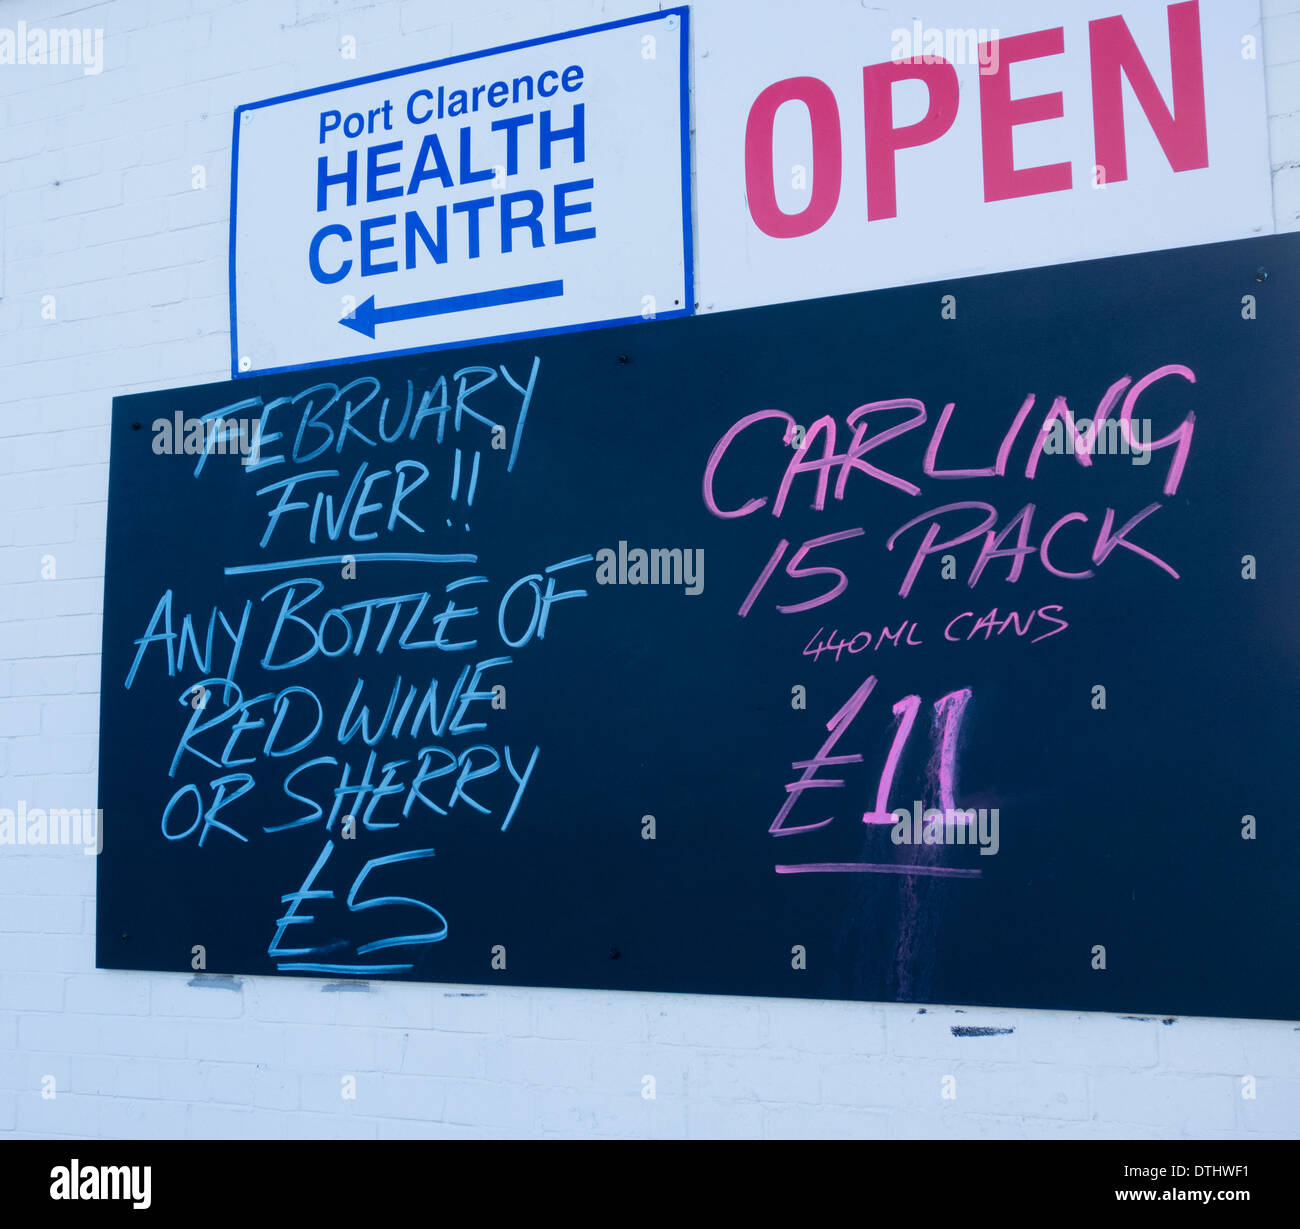 Alcohol prices on blackboard outside shop with Health centre sign above blackboard - Stock Image